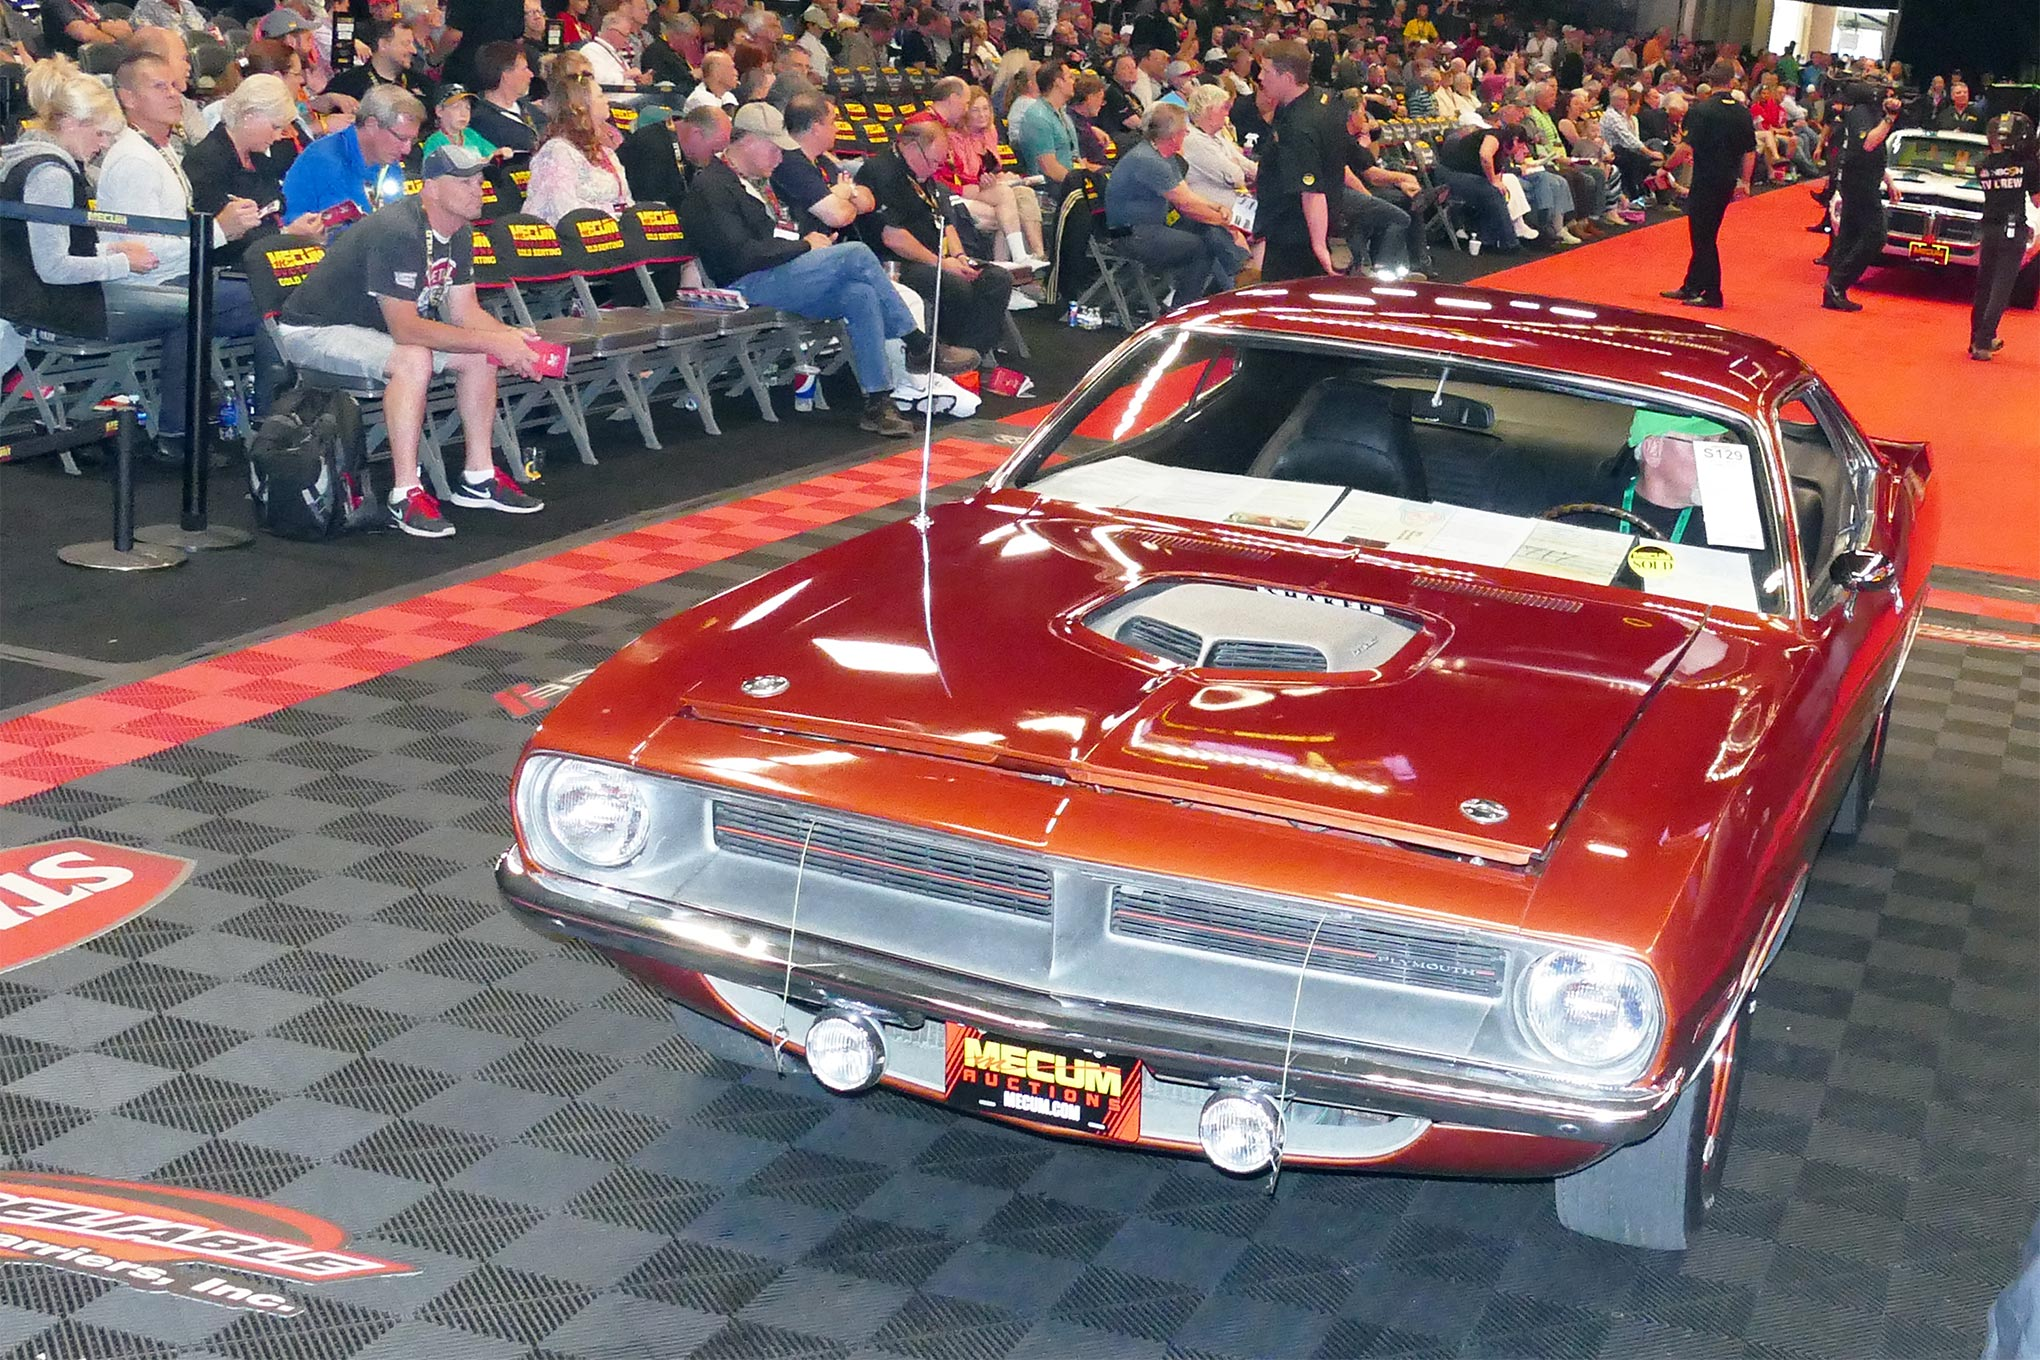 This amazing Hemi 'Cuda changed hands with a winning bid of $425,000 to highlight the sales action at Mecum's Indy Spring Classic on Saturday. With one owner until 2015, it was a special car.